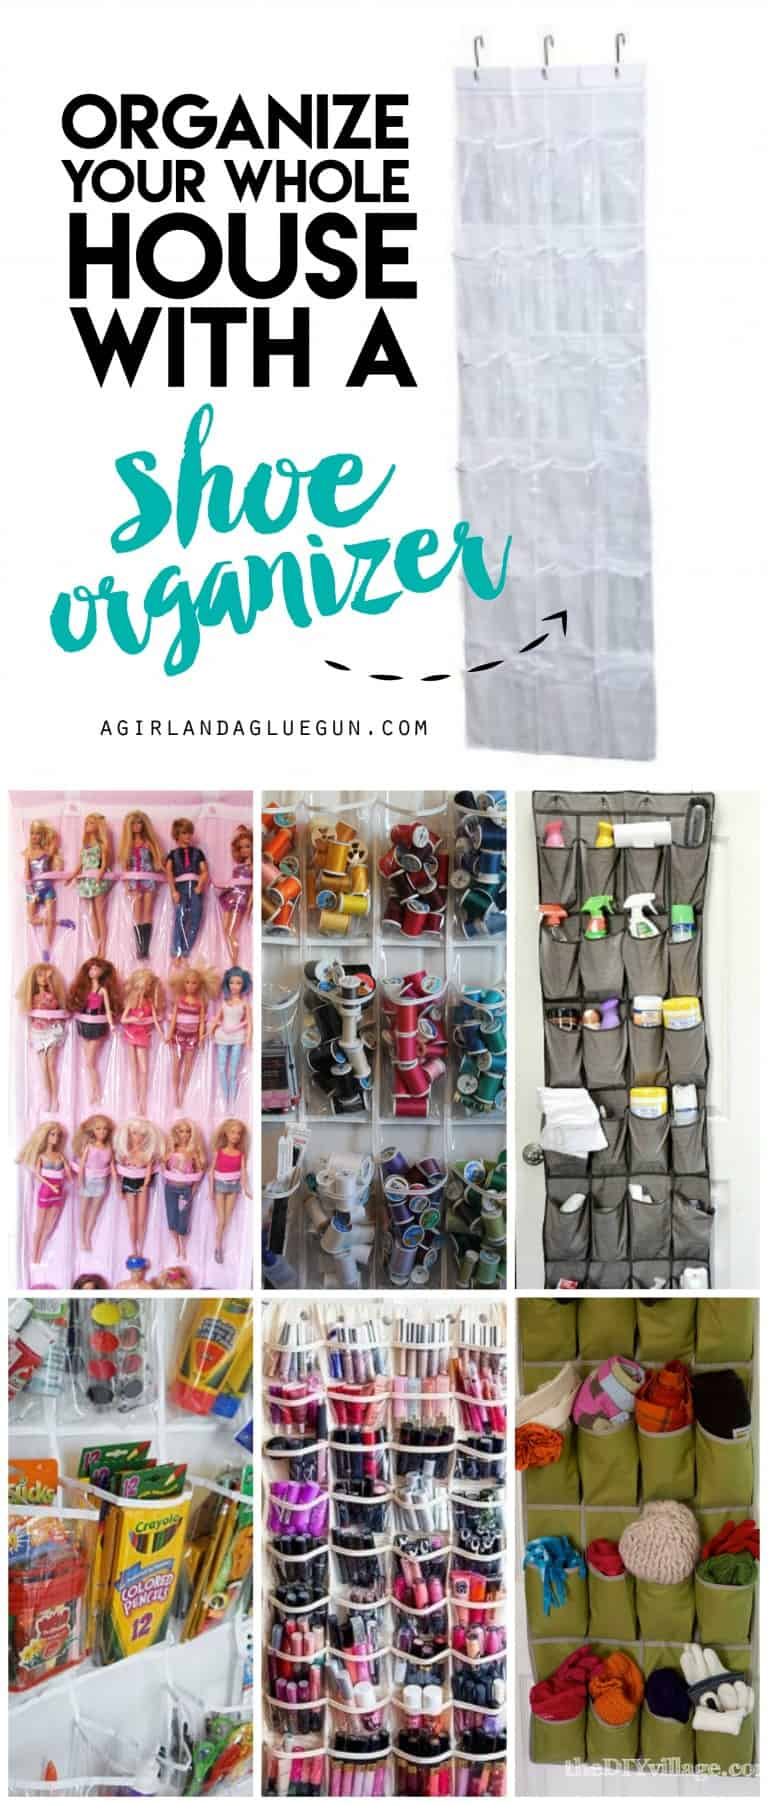 organize-your-whole-house-with-a-cheap-over-the-door-shoe-organizer-768x1805